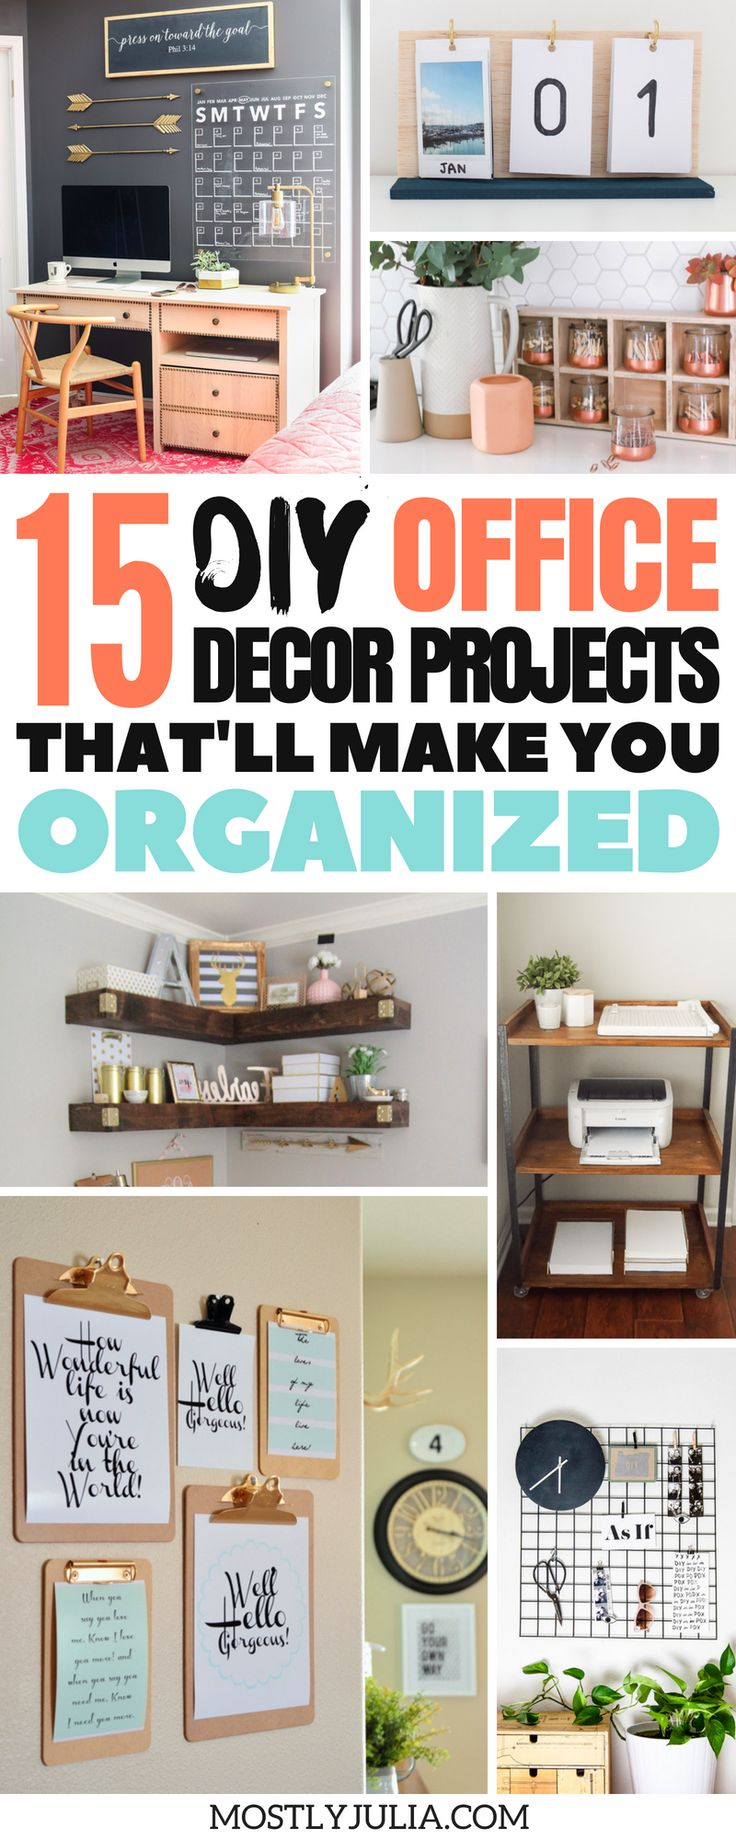 Organization DIY projects to make your small